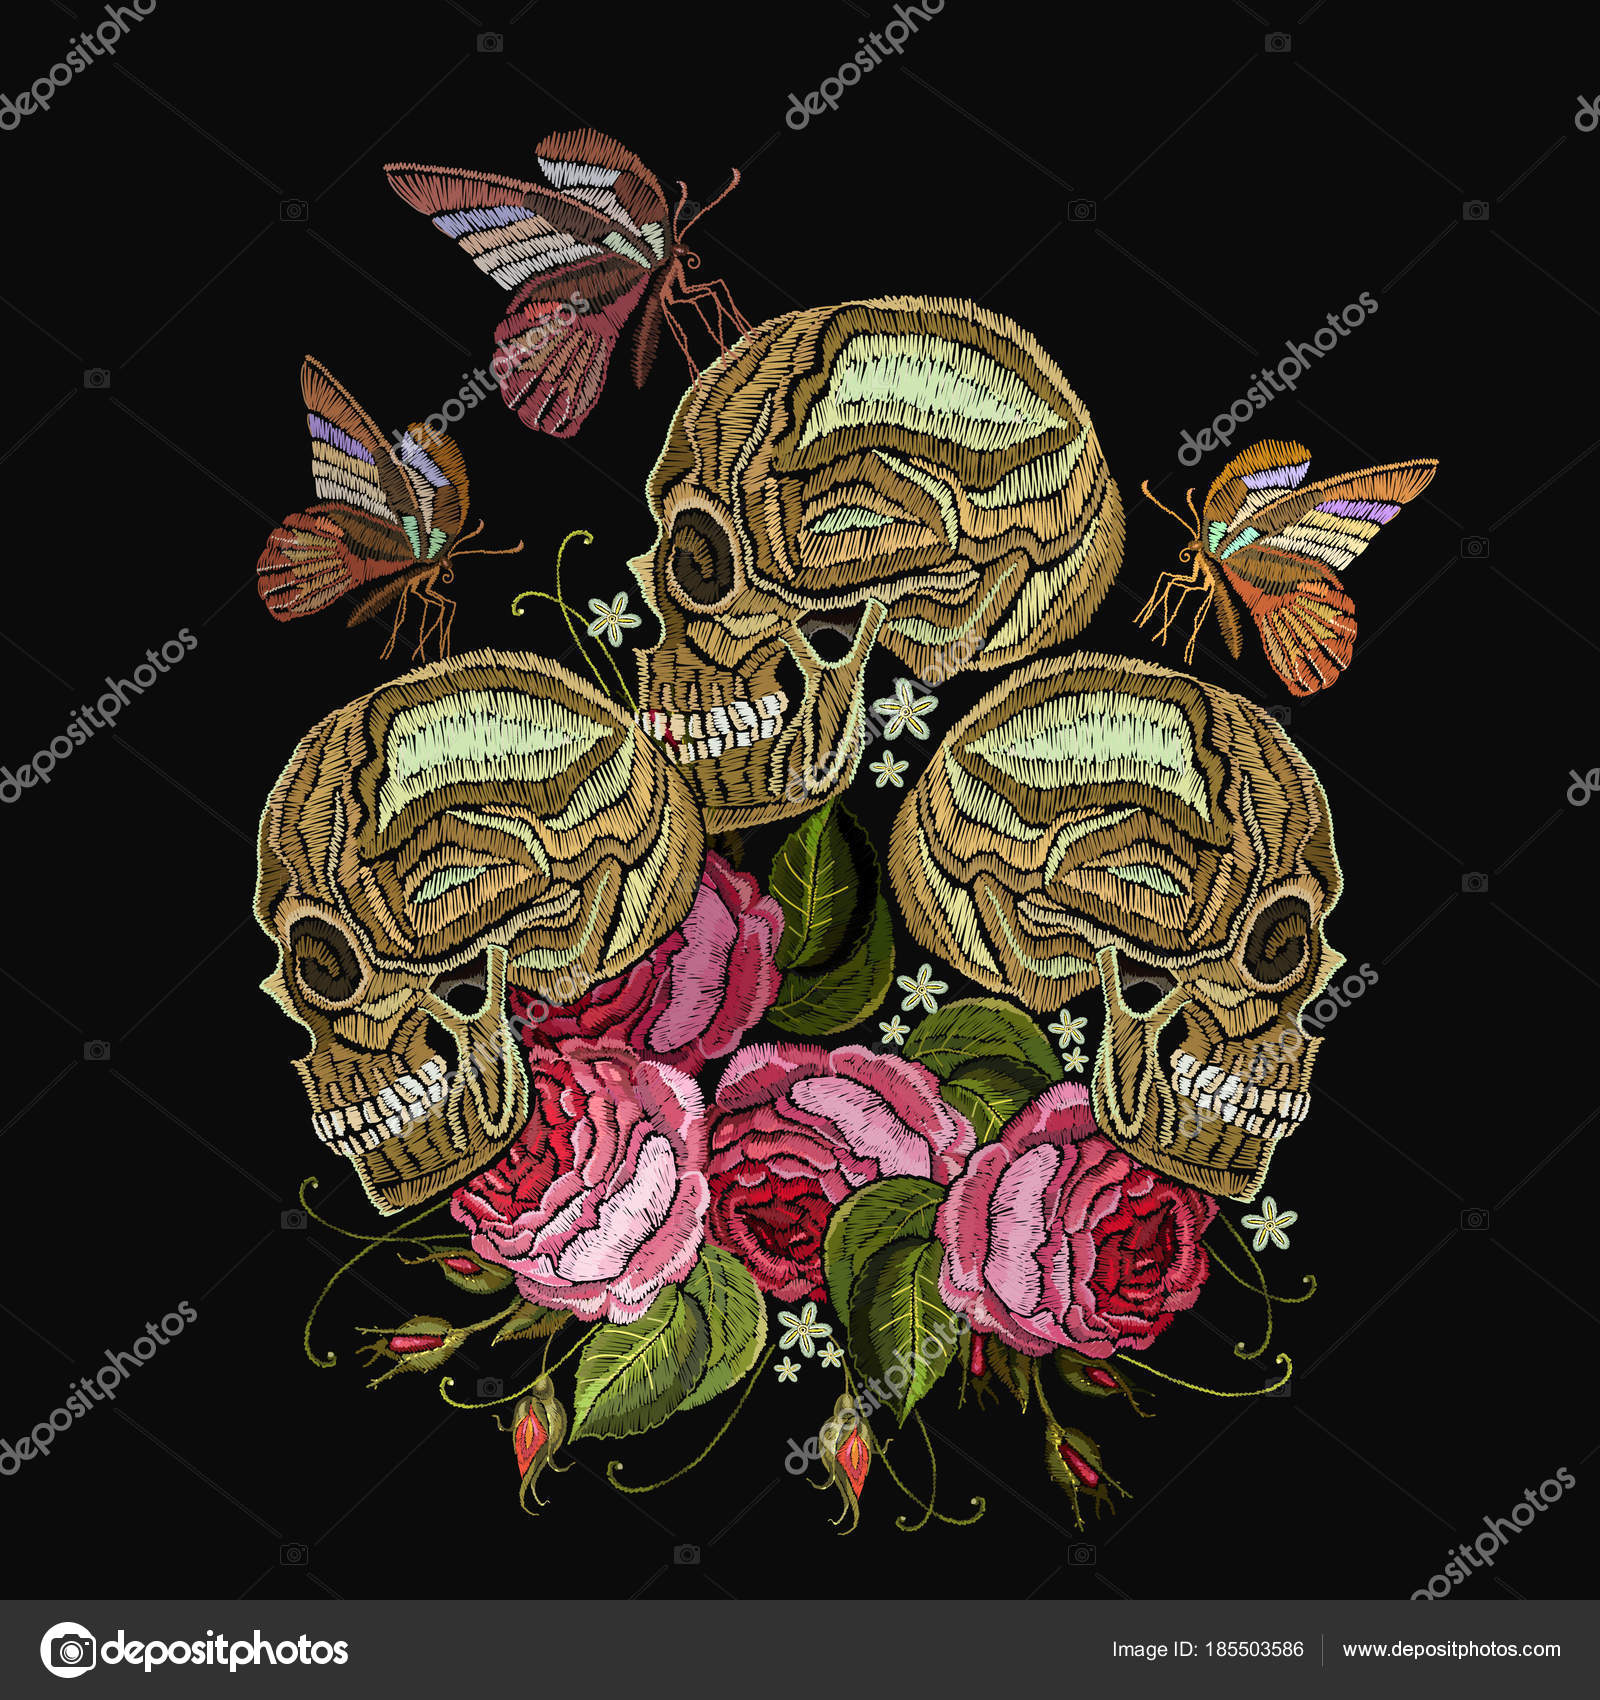 afb7d40c3 Embroidery skulls, roses flowers and butterfly. Gothic romantic — Stock  Vector